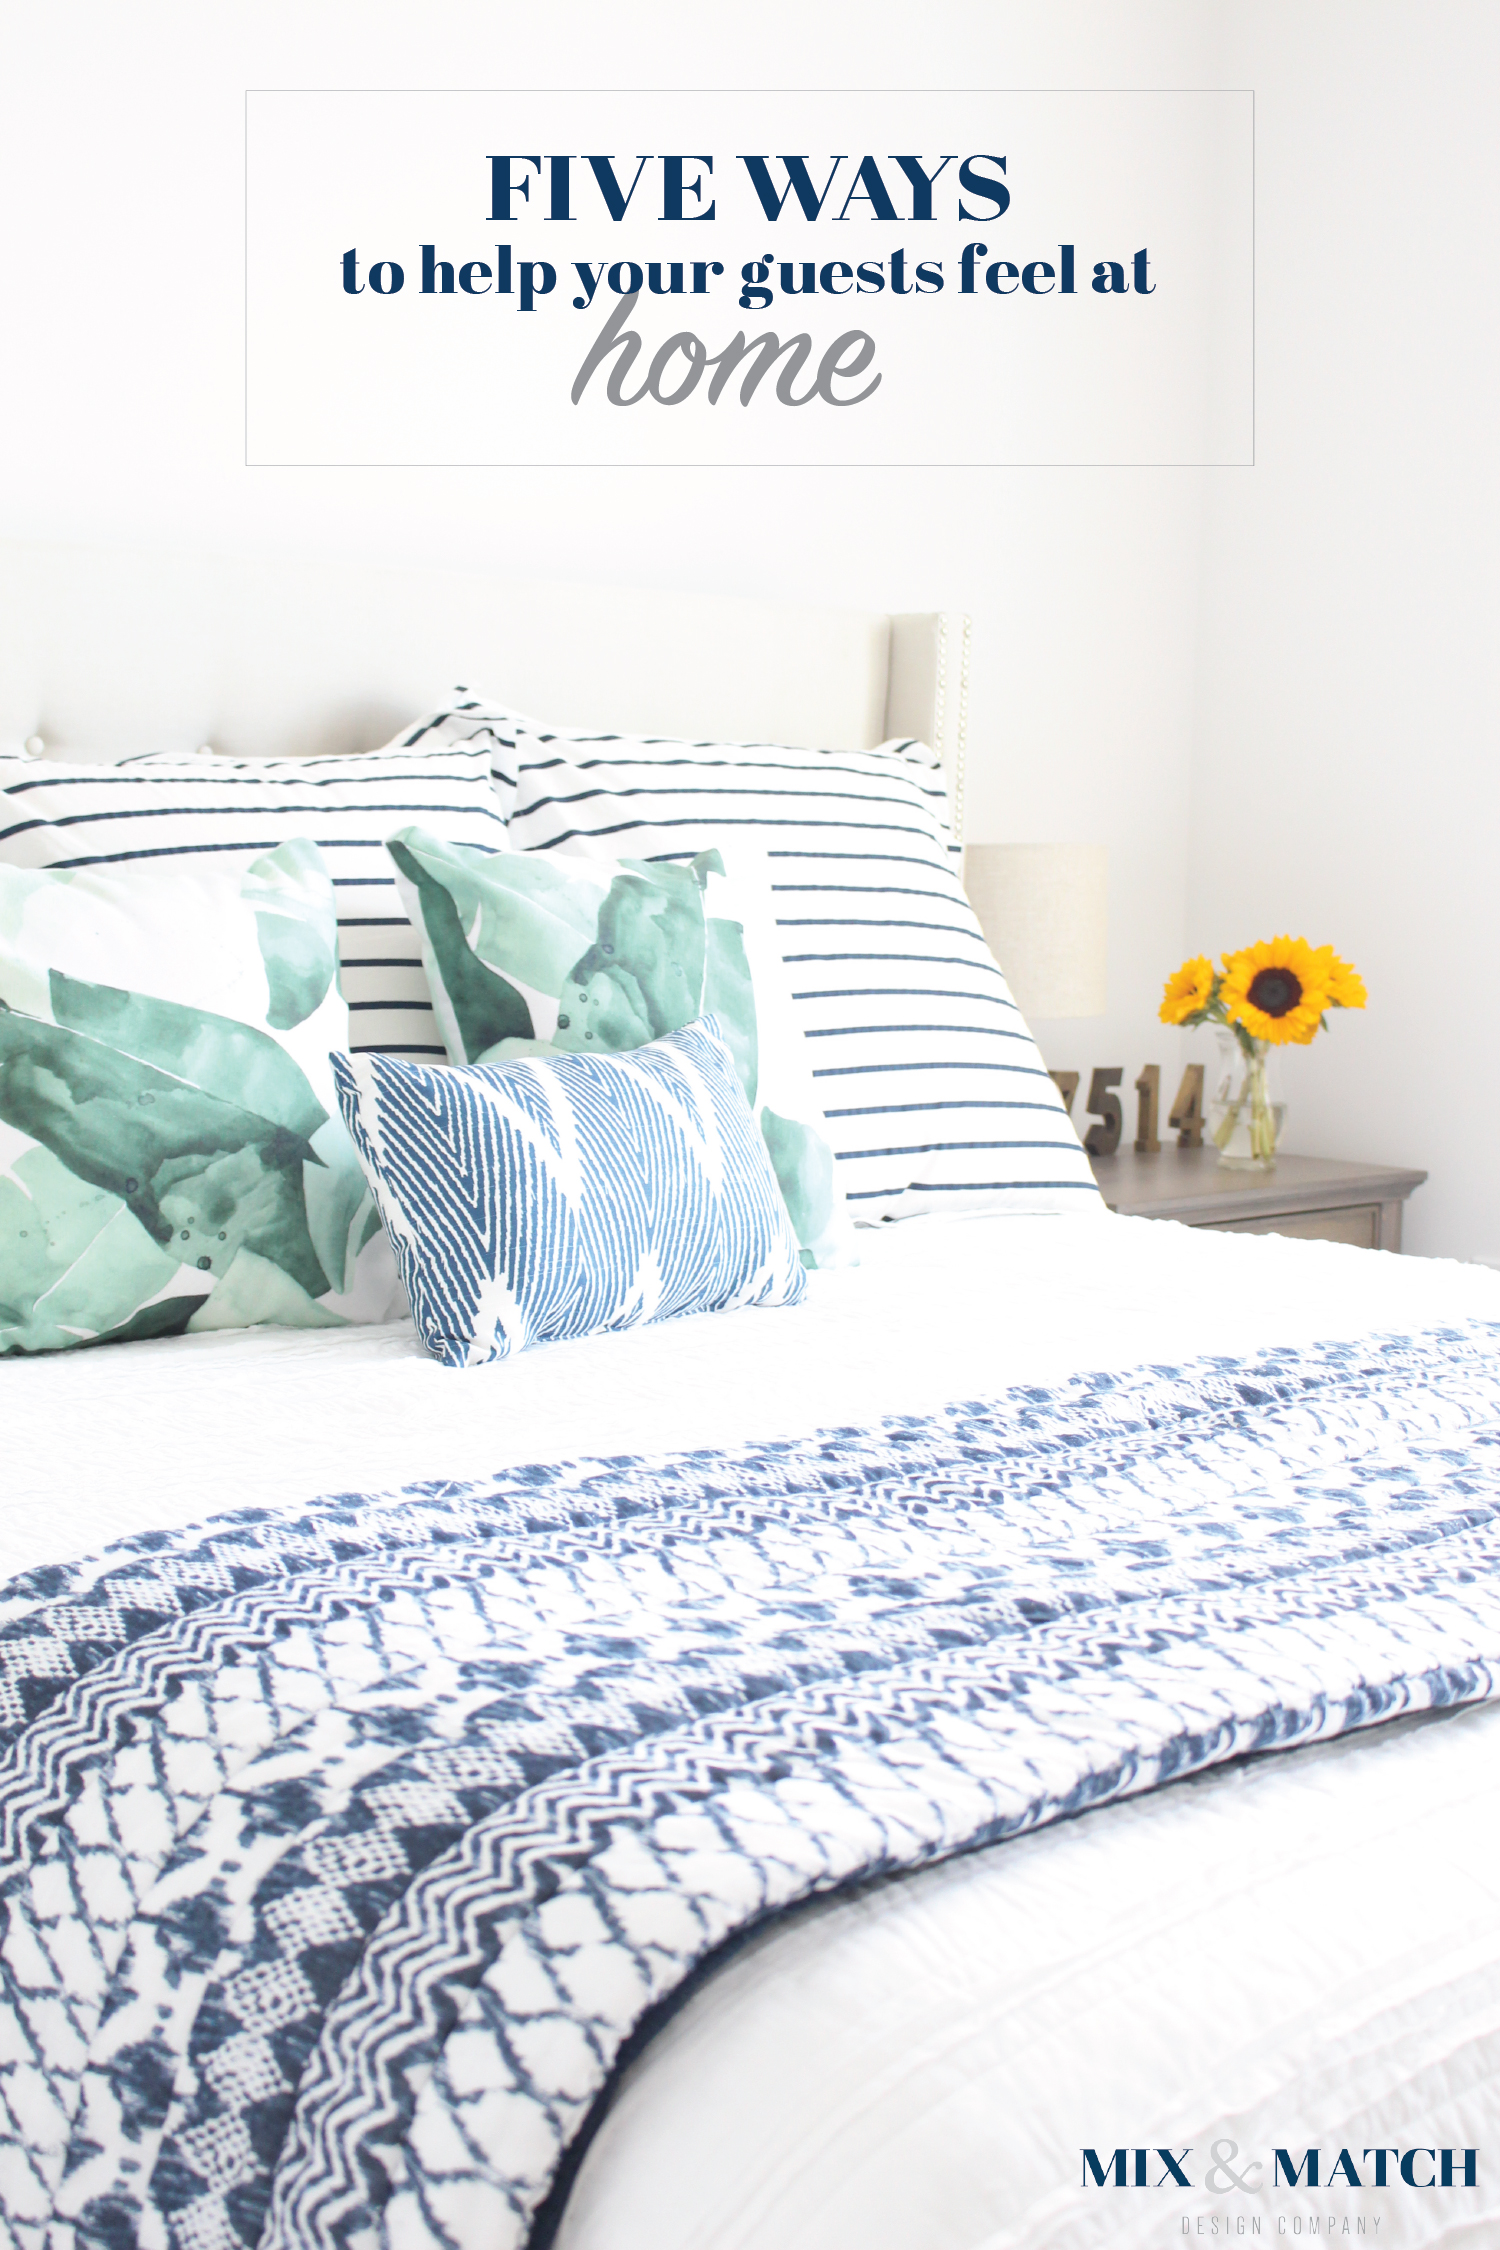 helping overnight guests feel at home: five helpful hints